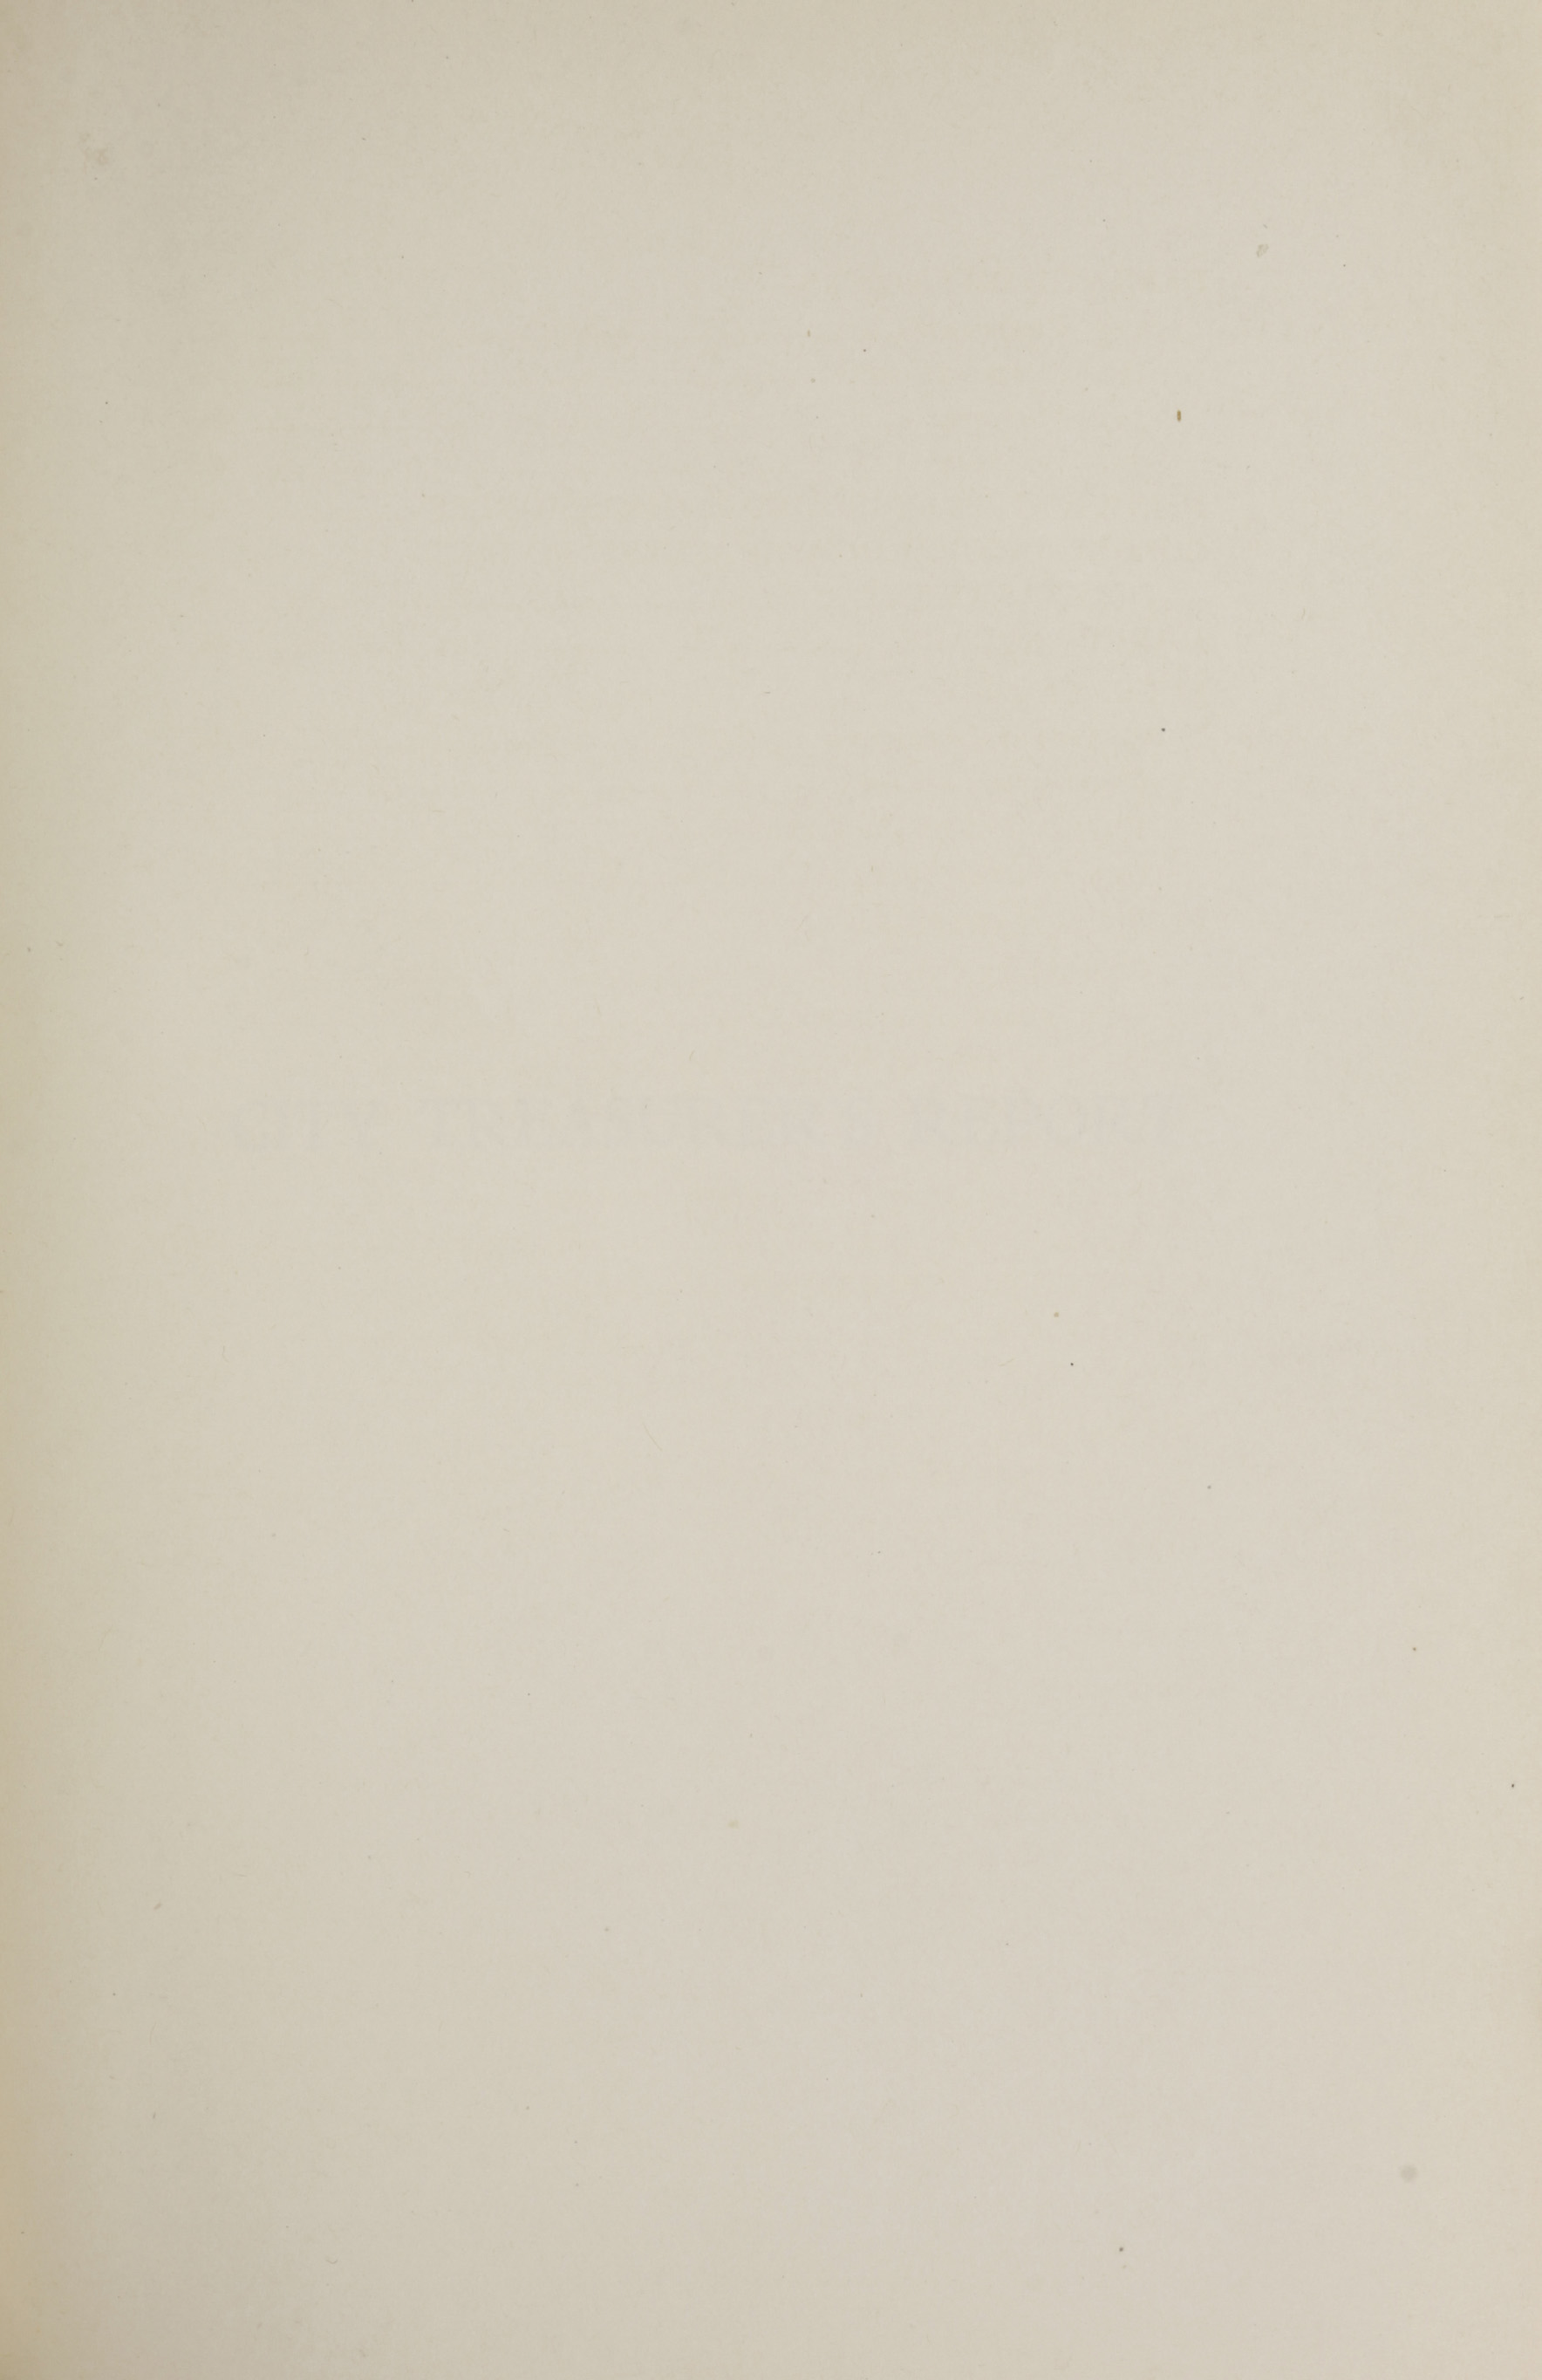 Charleston Yearbook, 1917, page xxiii